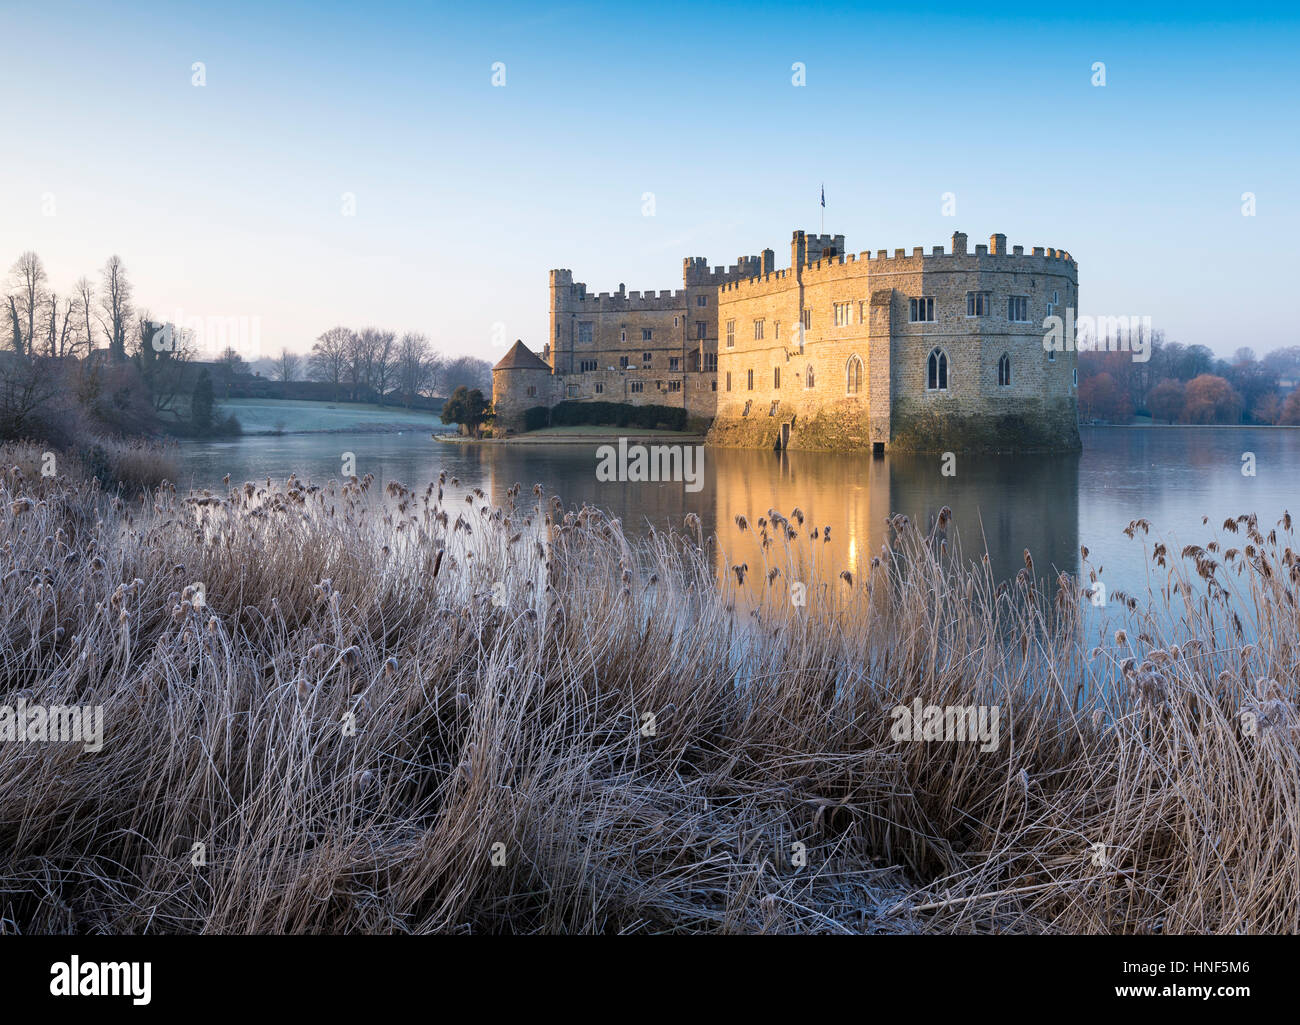 A frosty morning at Leeds Castle, Kent - Stock Image